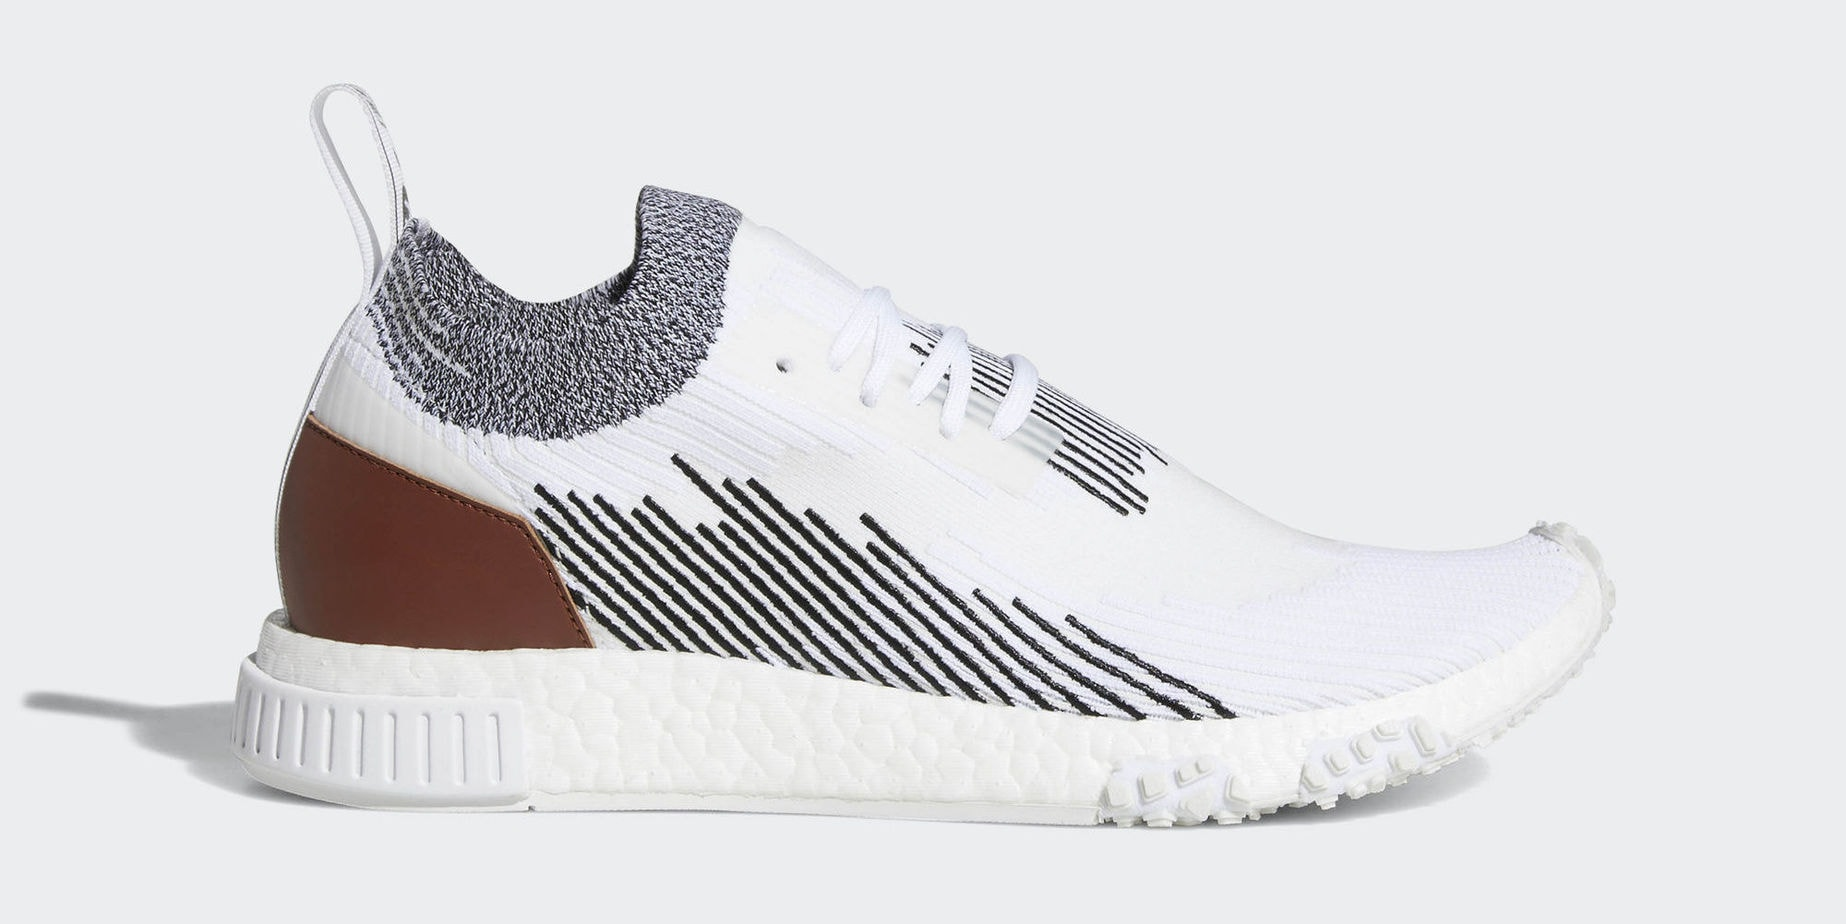 0d26cf8b10b adidas started 2018 with a brand new NMD silhouette. Titled the Racer